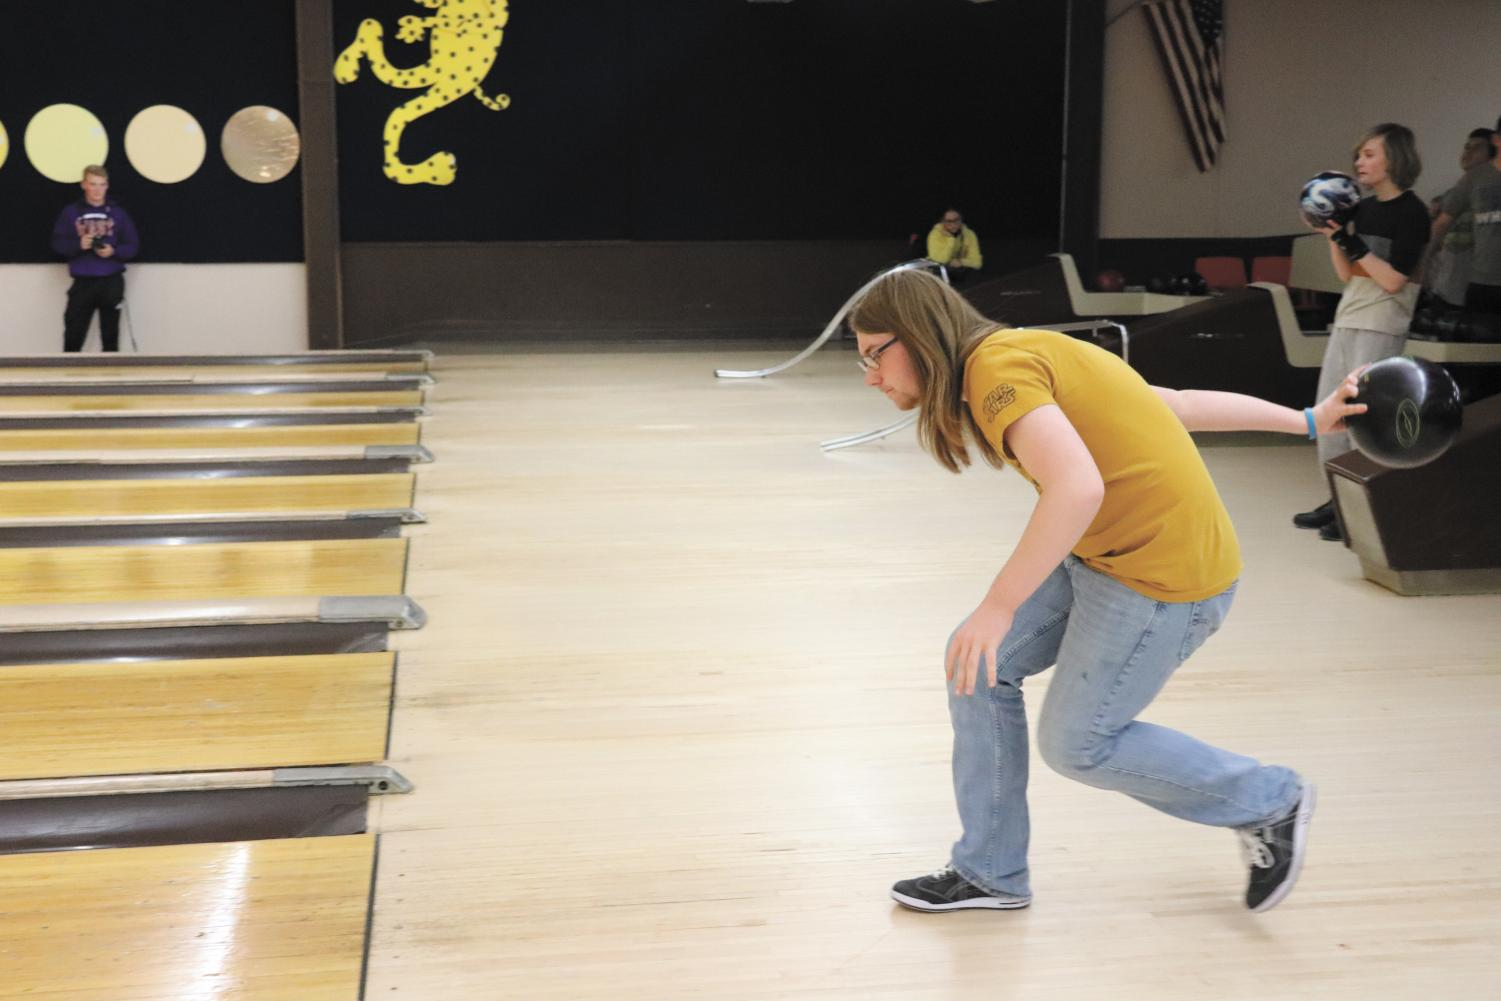 """Senior Alec Welte gets into his bowling stance. The unified bowling team practiced Tuesdays after school at Leopard Lanes. """"It's just something I like to do for fun; it isn't that challenging. I have been doing it for quite a while now,"""" Welte said. Photo by Cora Bennet"""